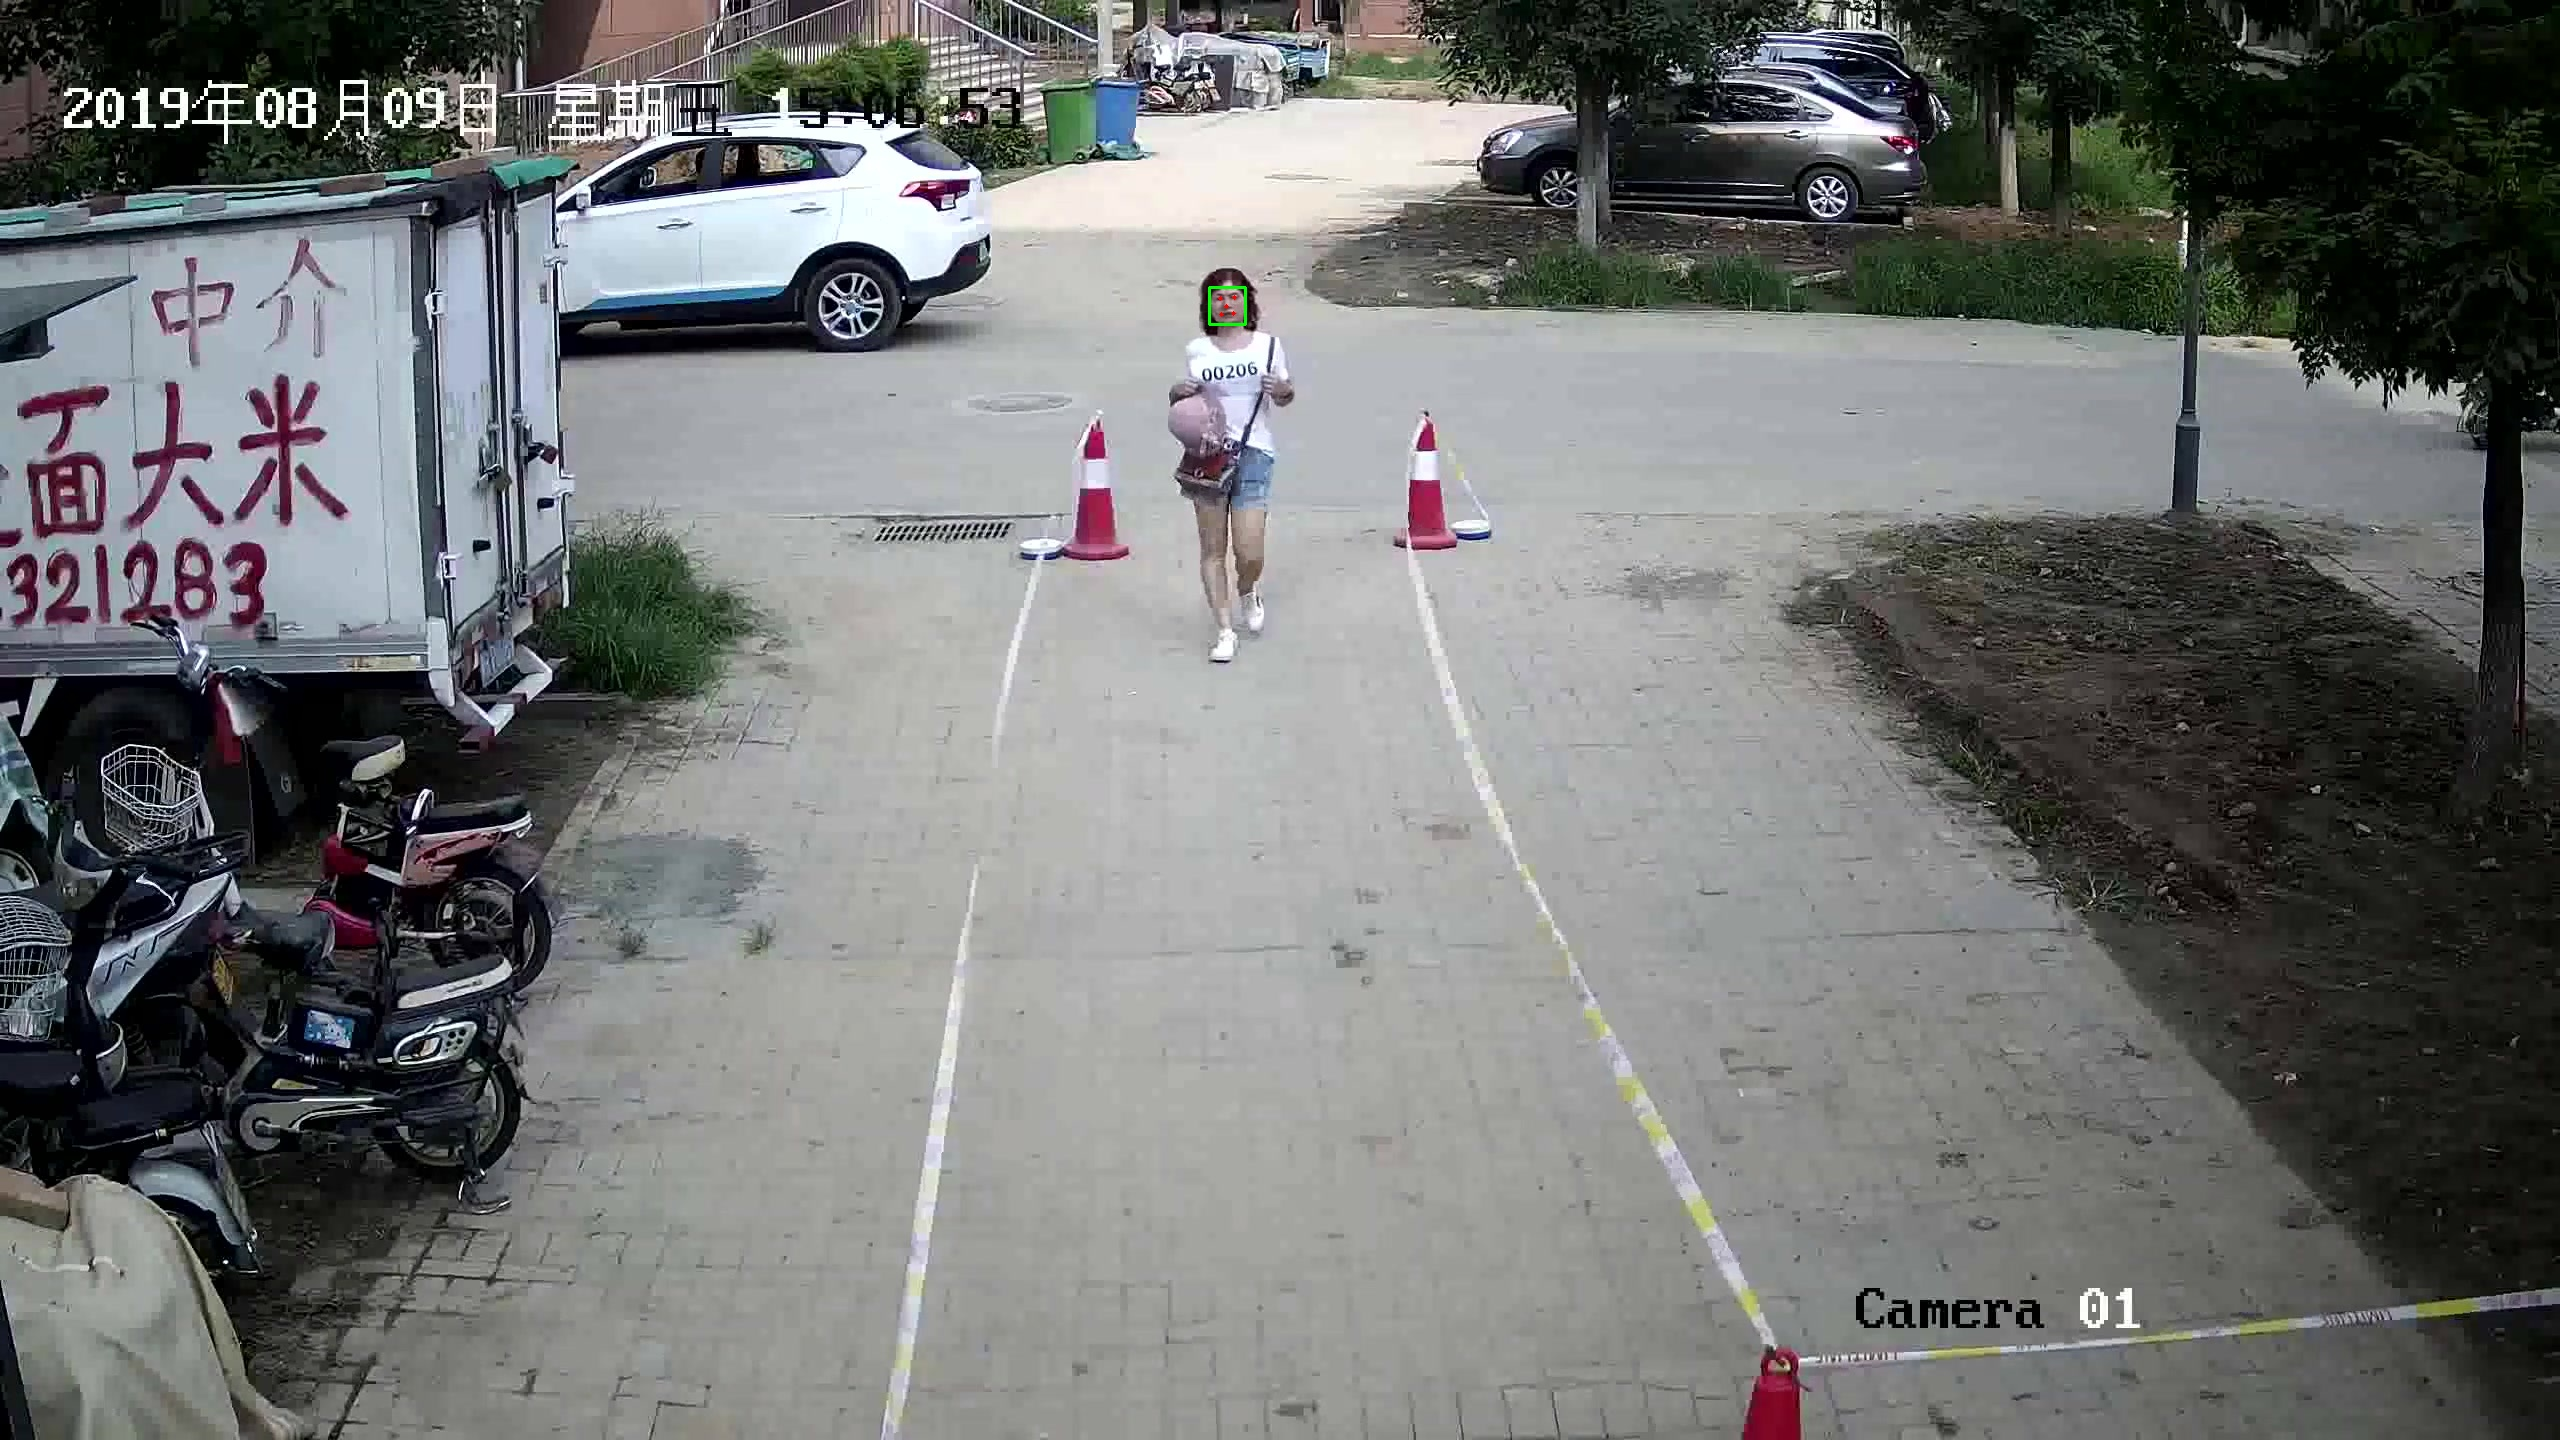 10,000 People face recognition data in surveillance scenes_Intelligent Security Data Solution_Datatang